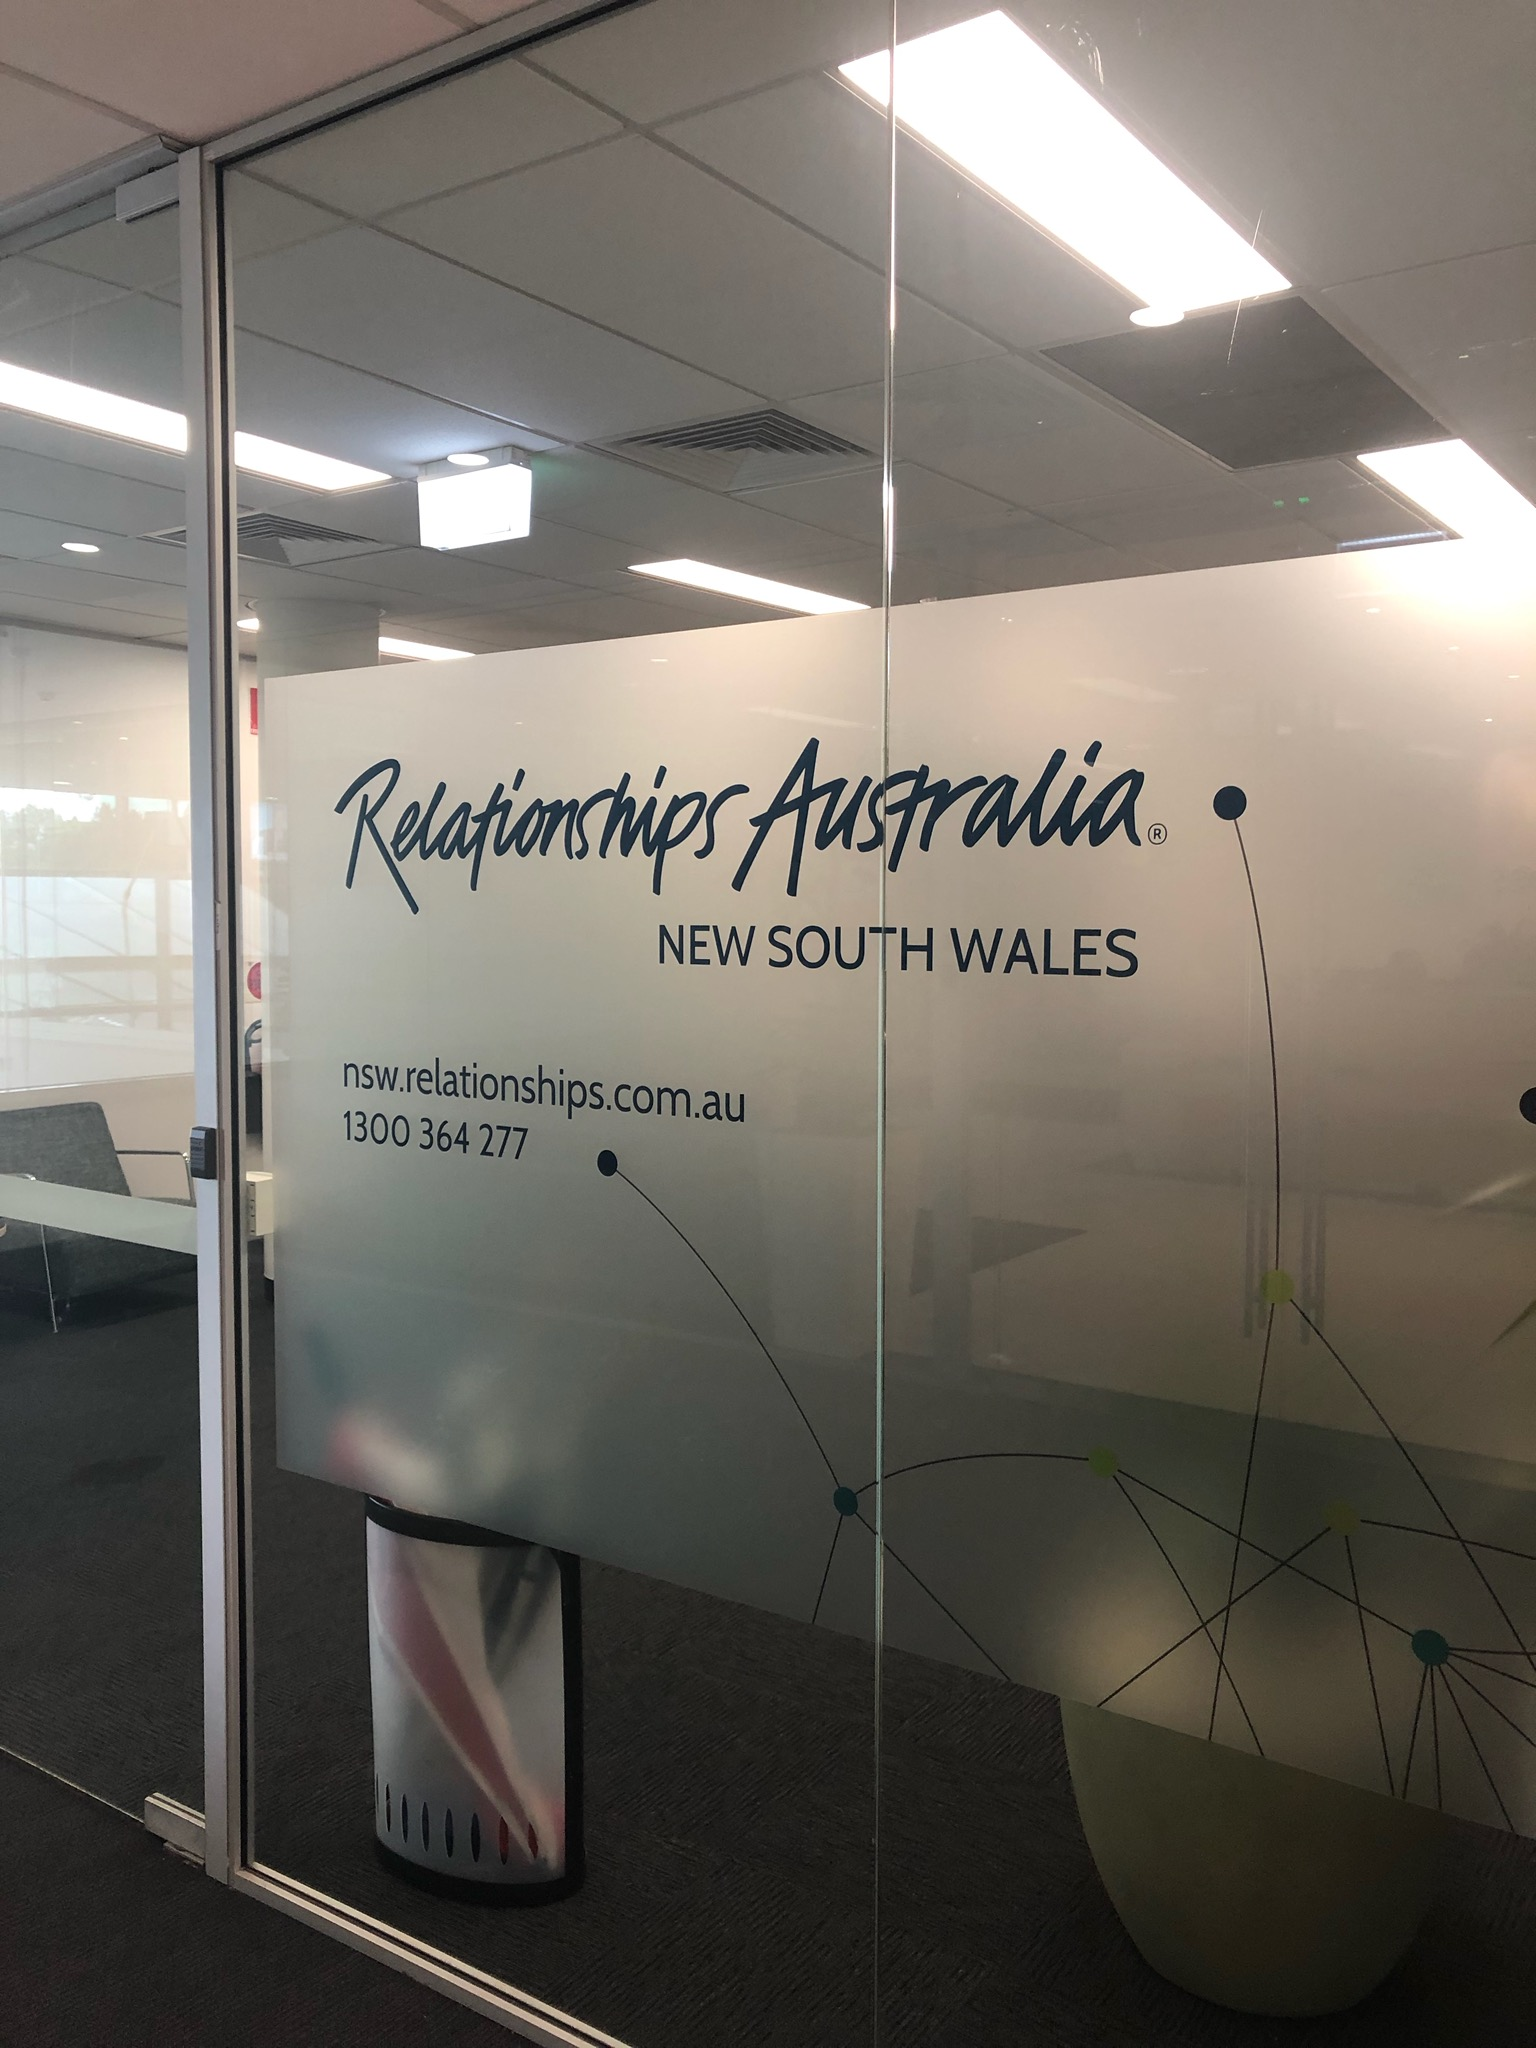 Thanks to Andrew King and Relationships Australia for hosting this event!